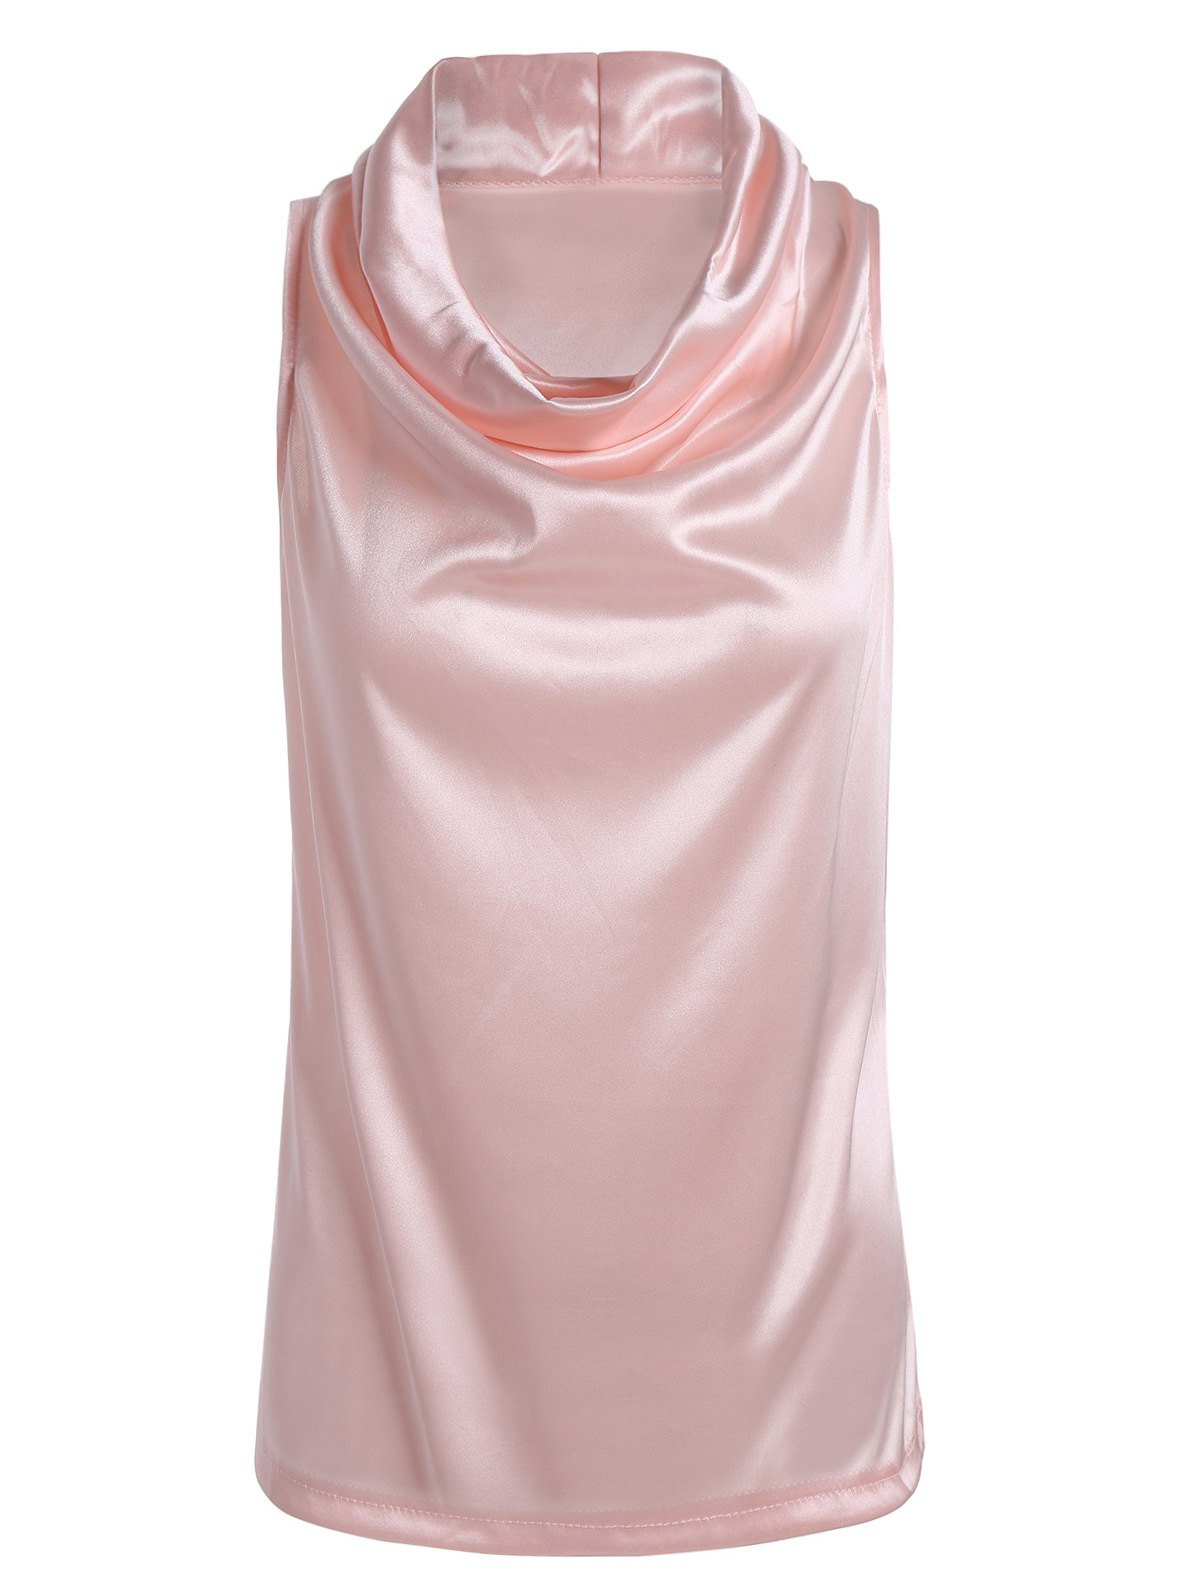 Cowl Neck Voir Thru Tank Top - Rose Pâle S